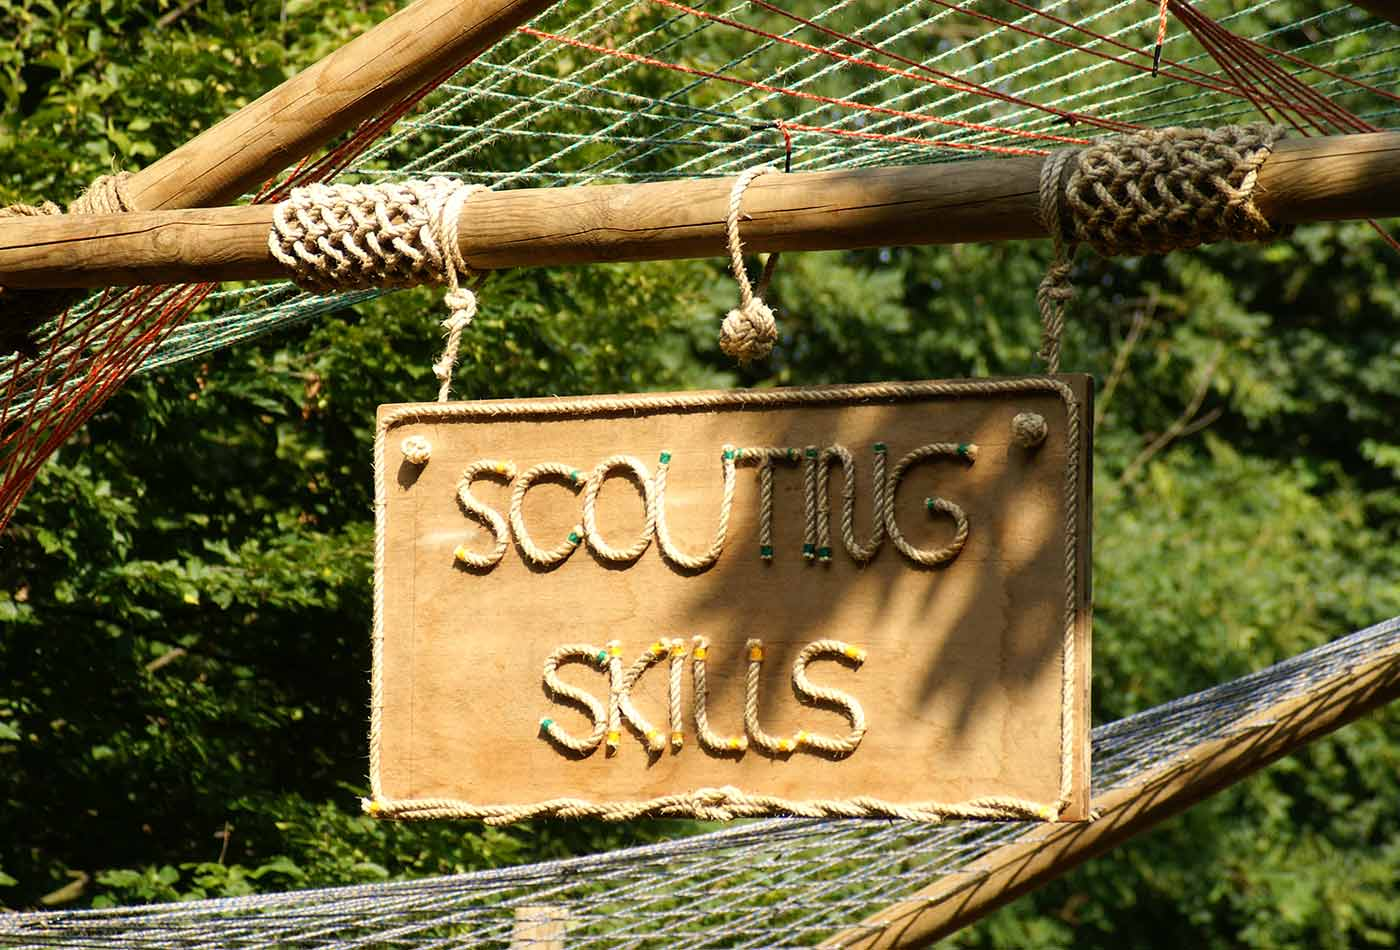 Scouting Skills at Gilwell Park